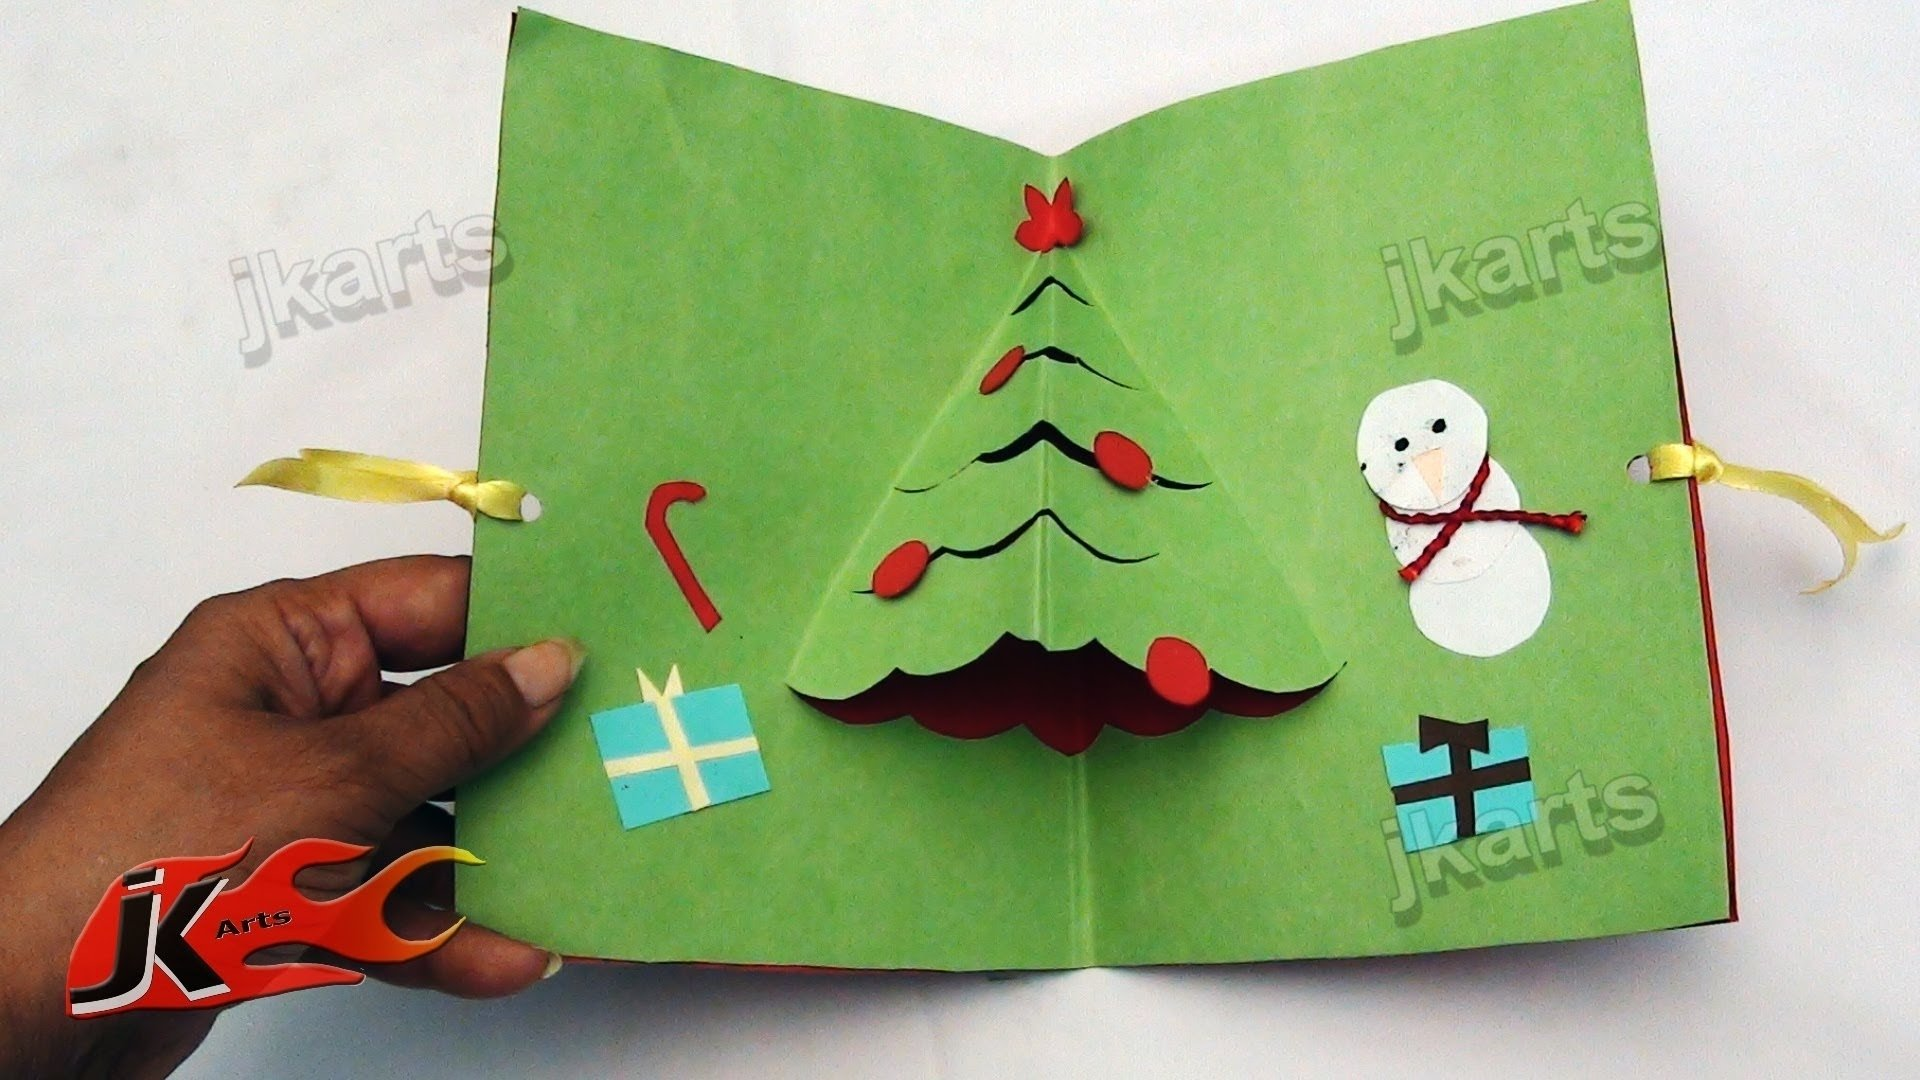 10 Attractive Christmas Card Ideas For Kids easy pop up christmas card jk arts 106 youtube 2021